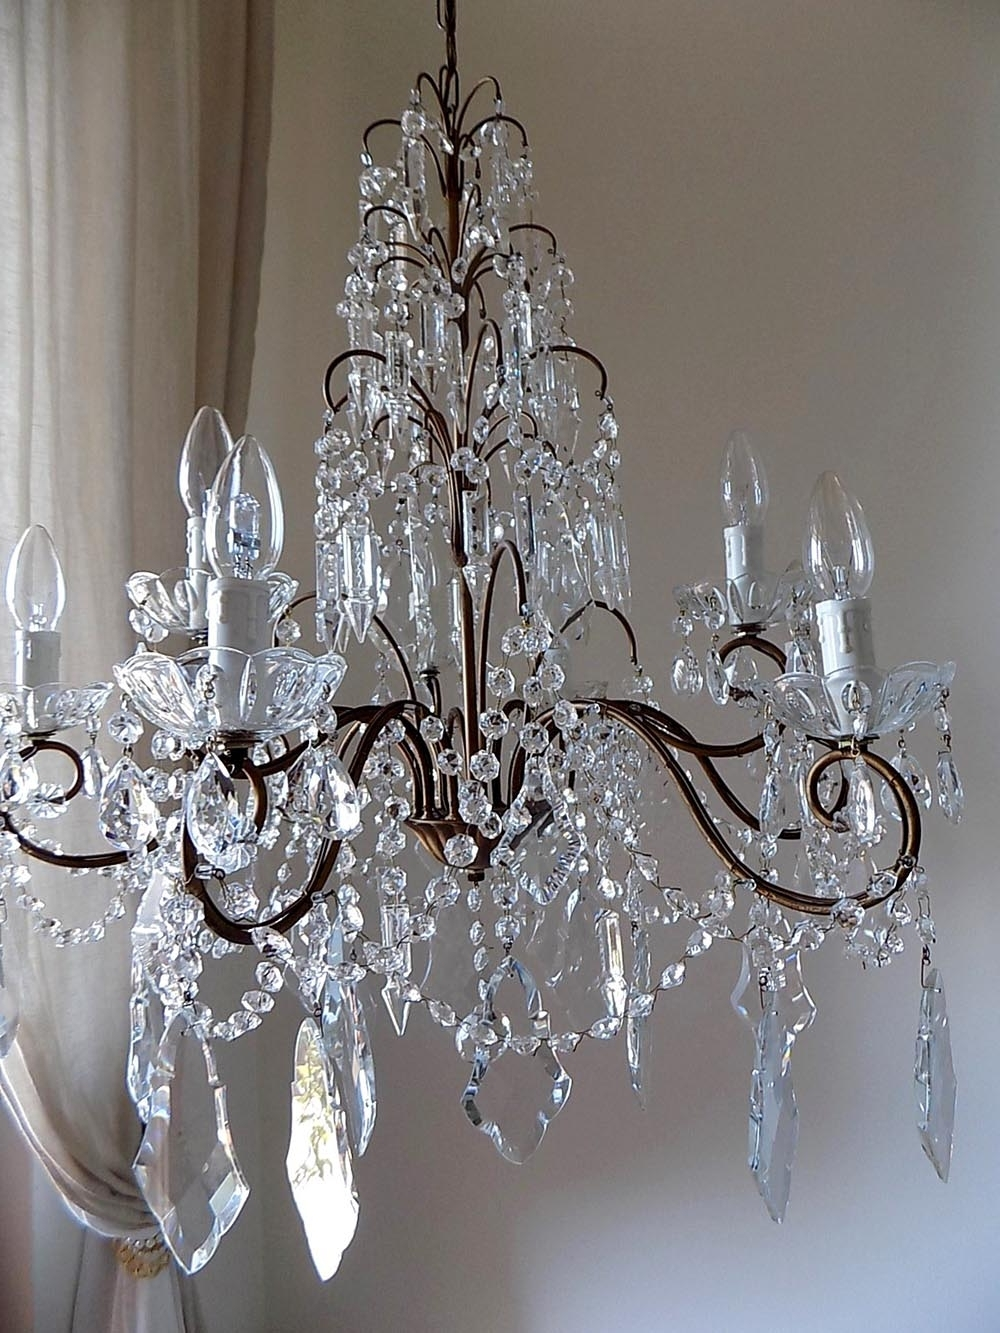 Most Recently Released Italian Vintage 9 Arms Chandelier With Rare Shaped Crystals In Brass And Crystal Chandeliers (View 10 of 15)